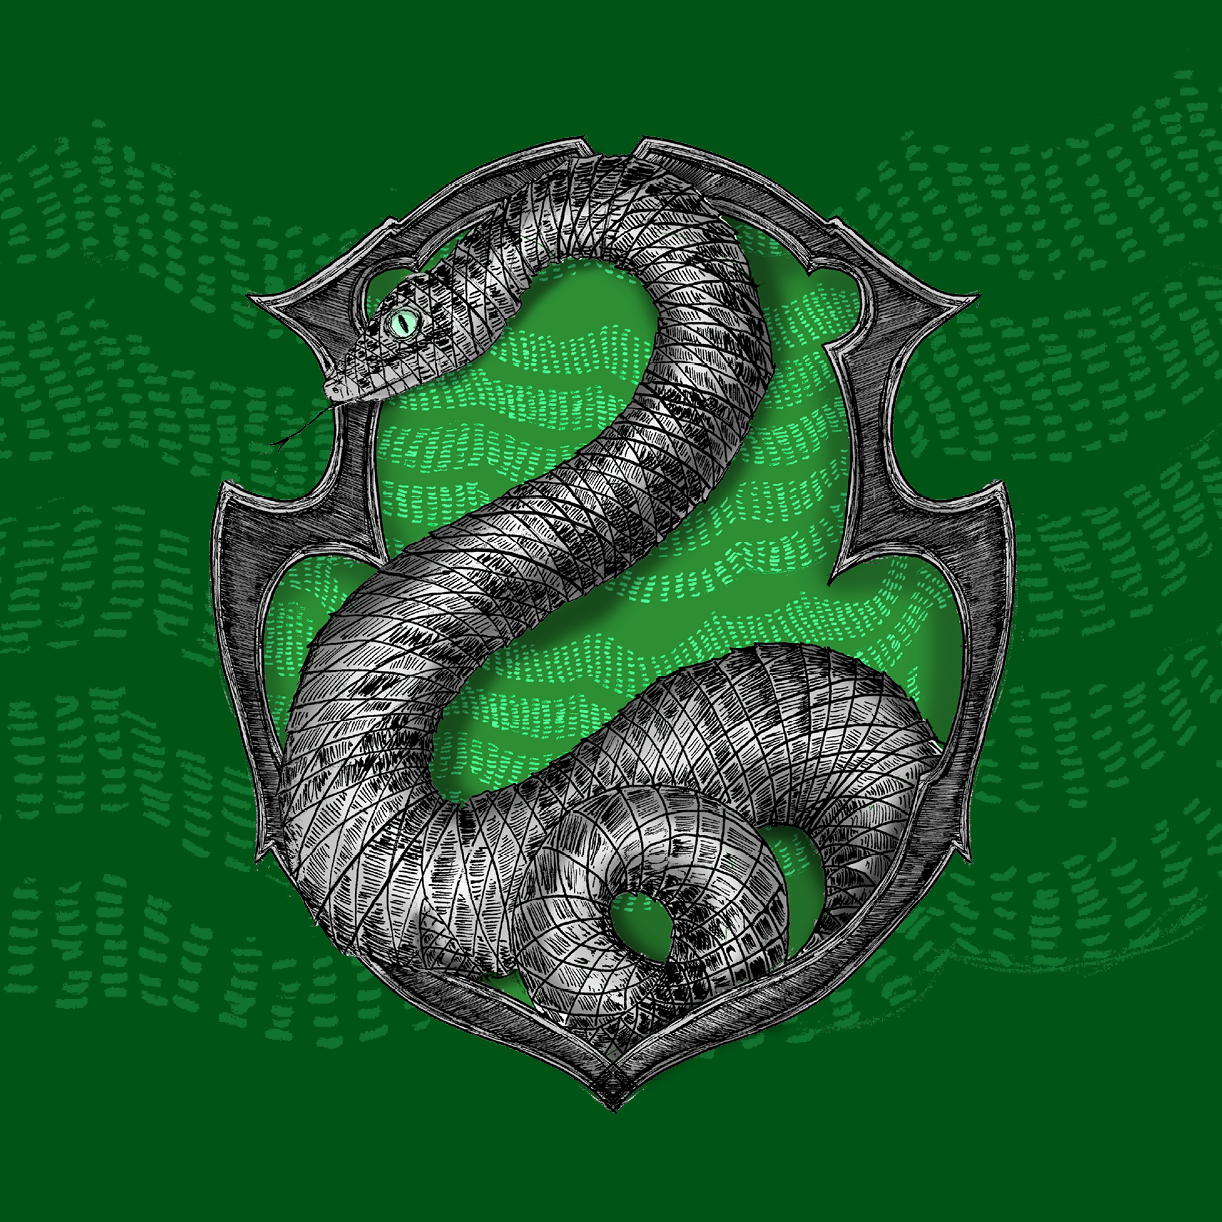 Slytherin Crest from Pottermore